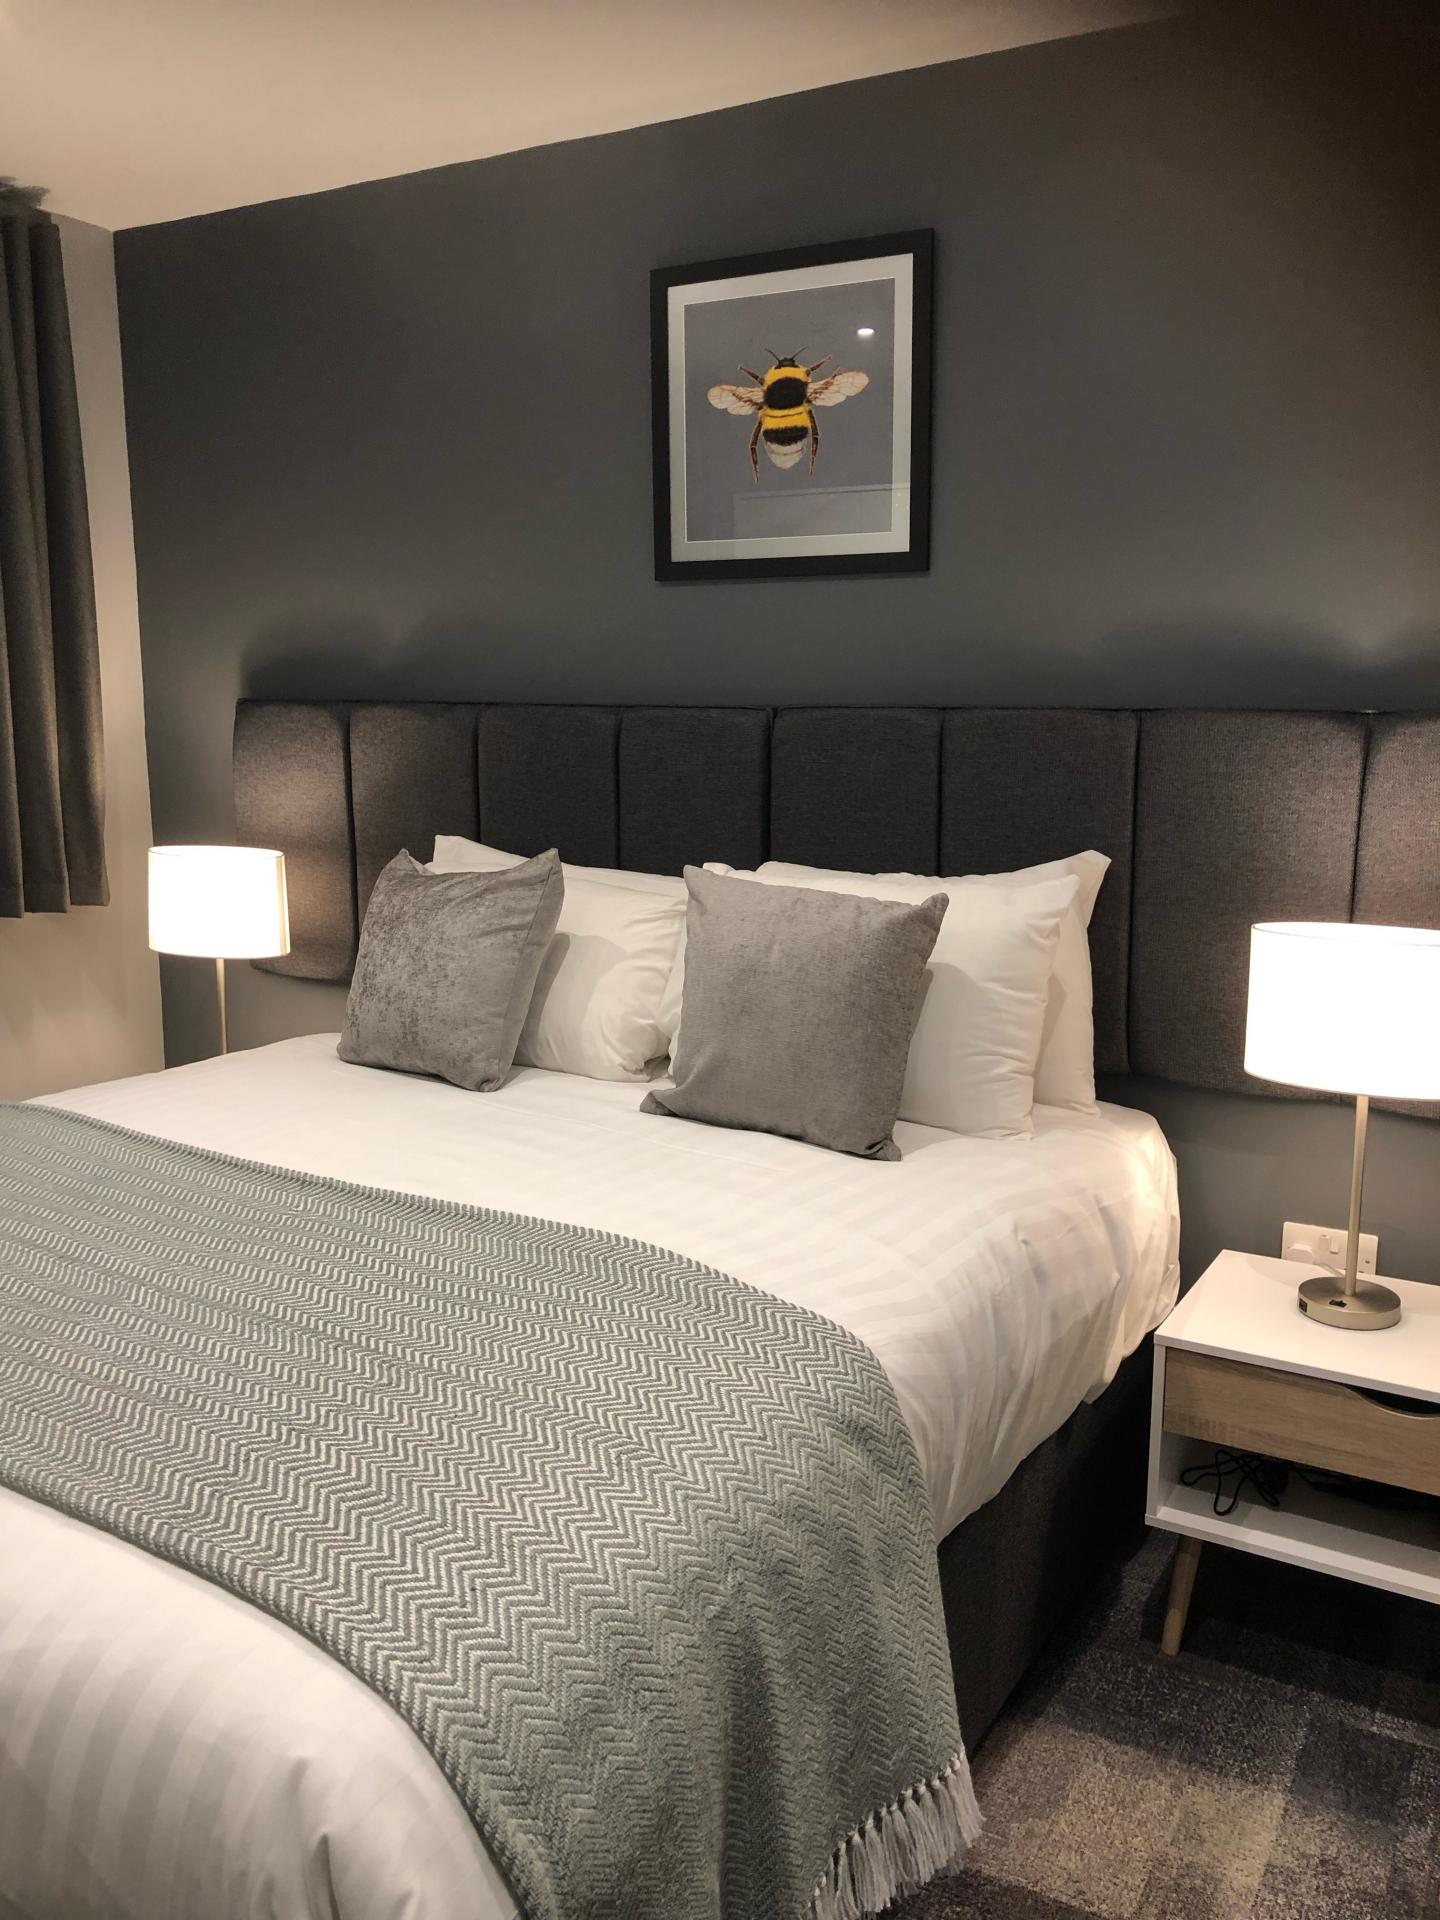 Table lamps at The Spires Cardiff, Centre, Cardiff - Citybase Apartments